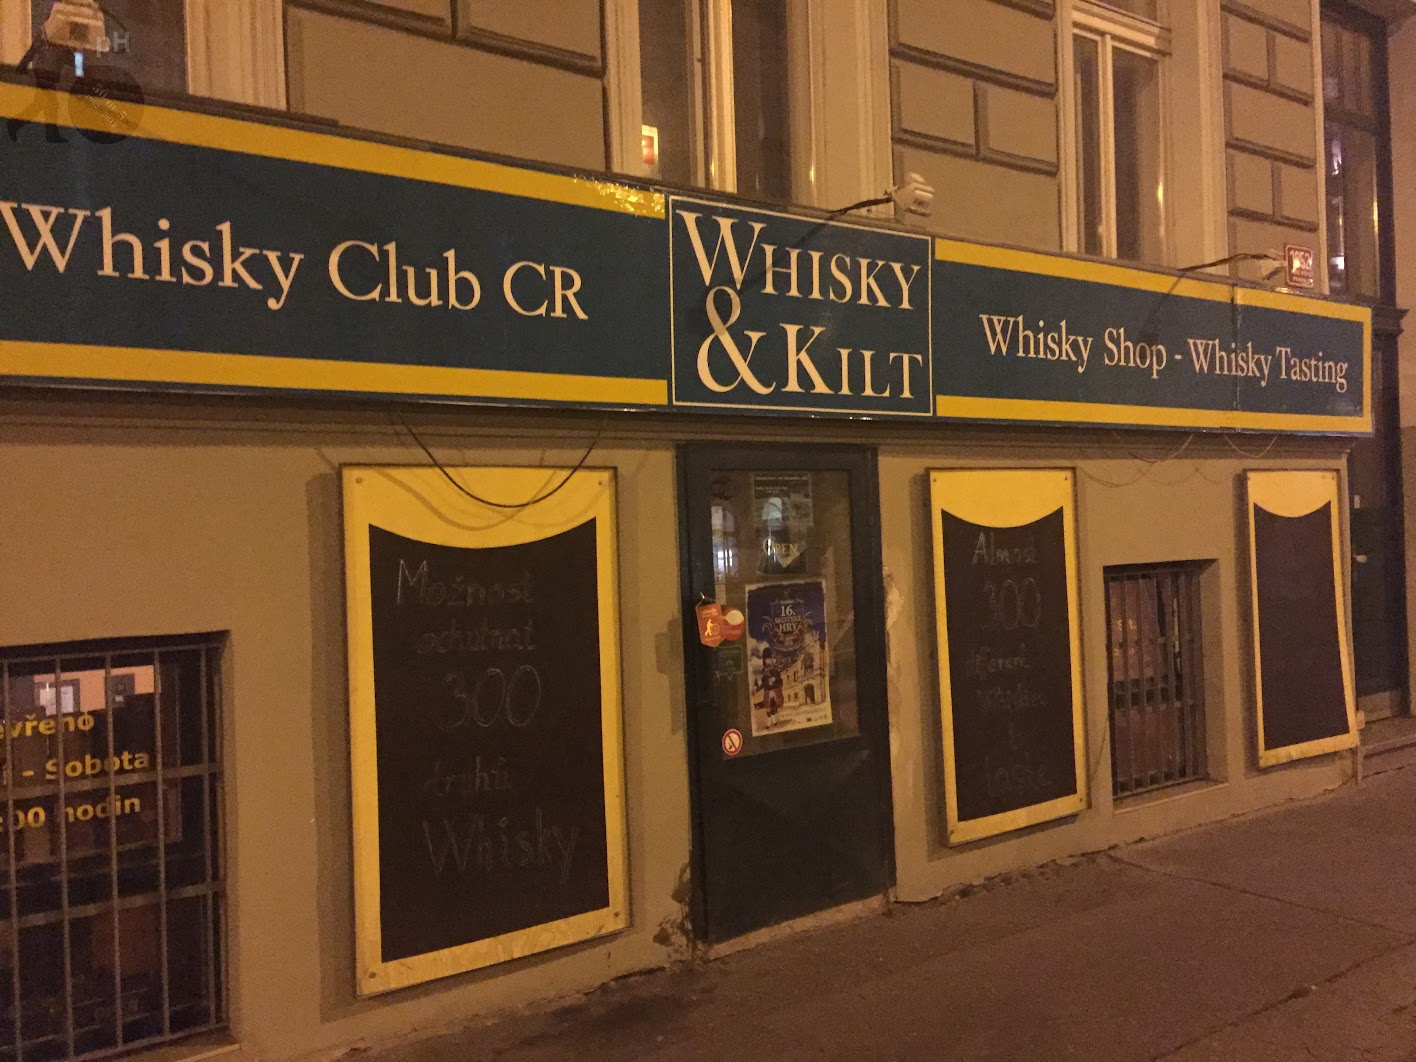 Whisky & Kilt Prague